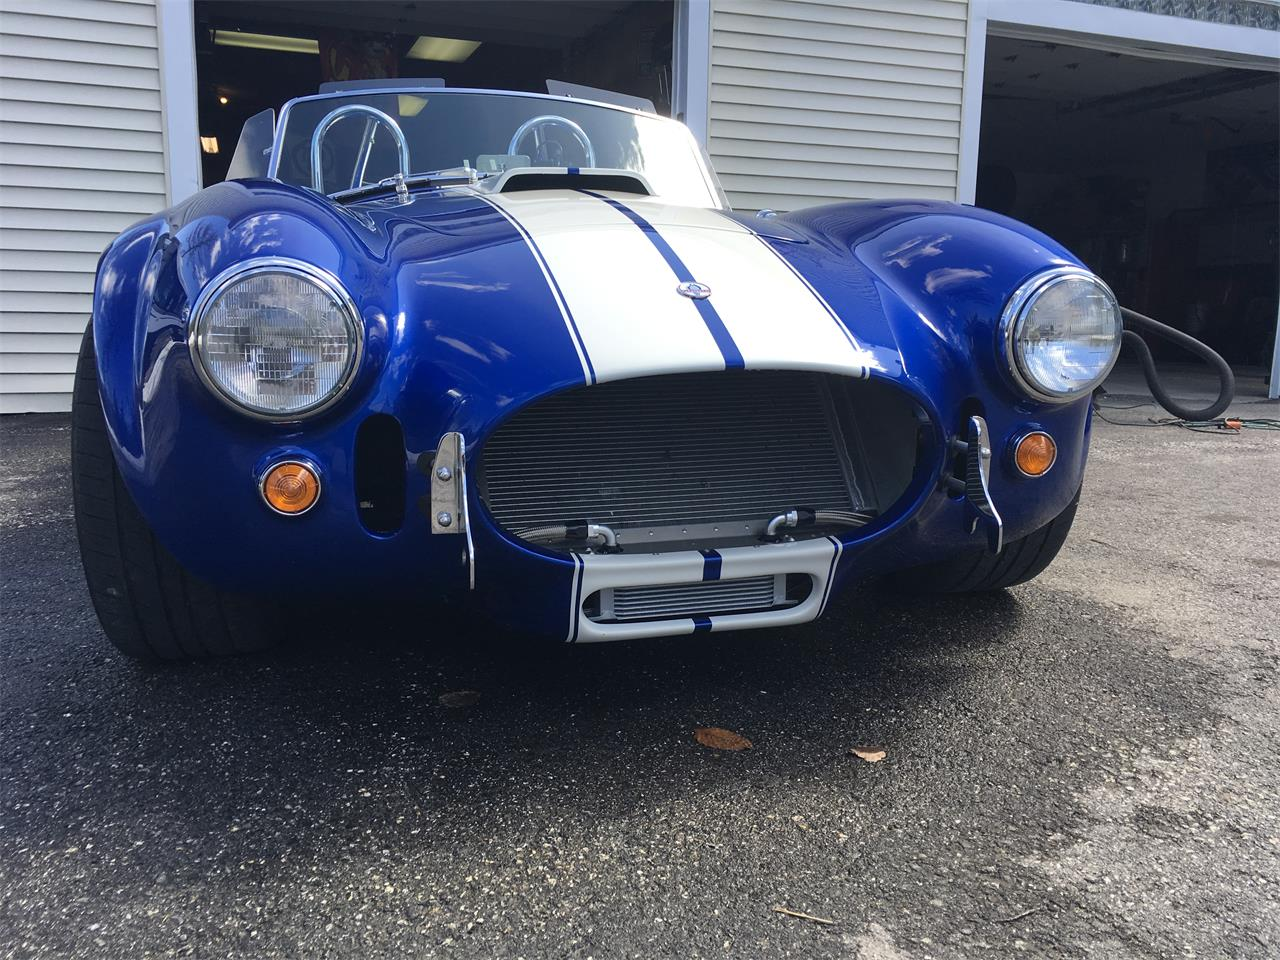 Large Picture of '66 Shelby Cobra Replica - $46,999.00 Offered by a Private Seller - Q2QB